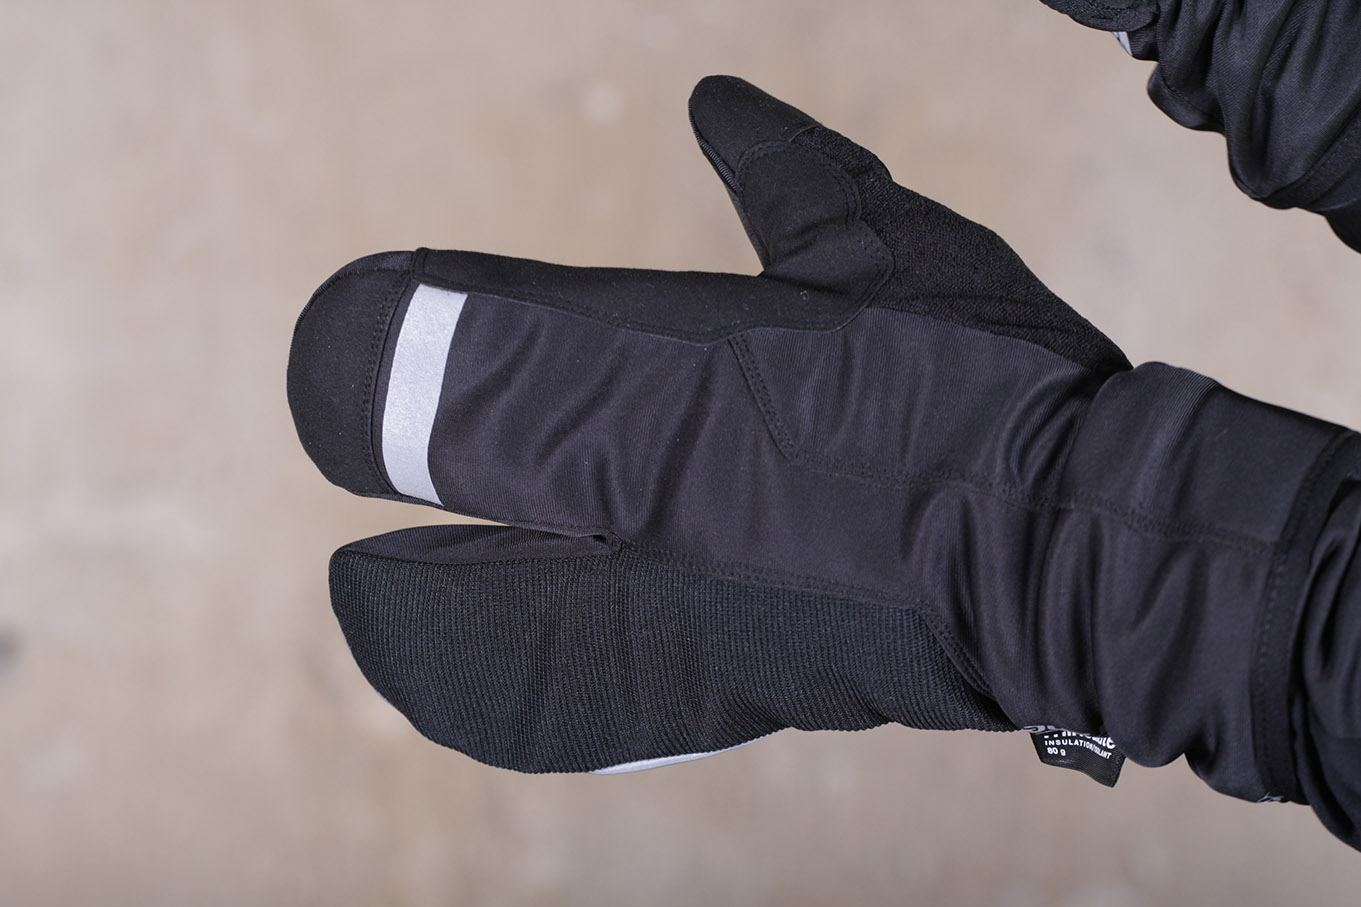 NEW CYCLING GLOVES TERRY BACK//GRIPPER PALM 2 PR FOR $19.99 !